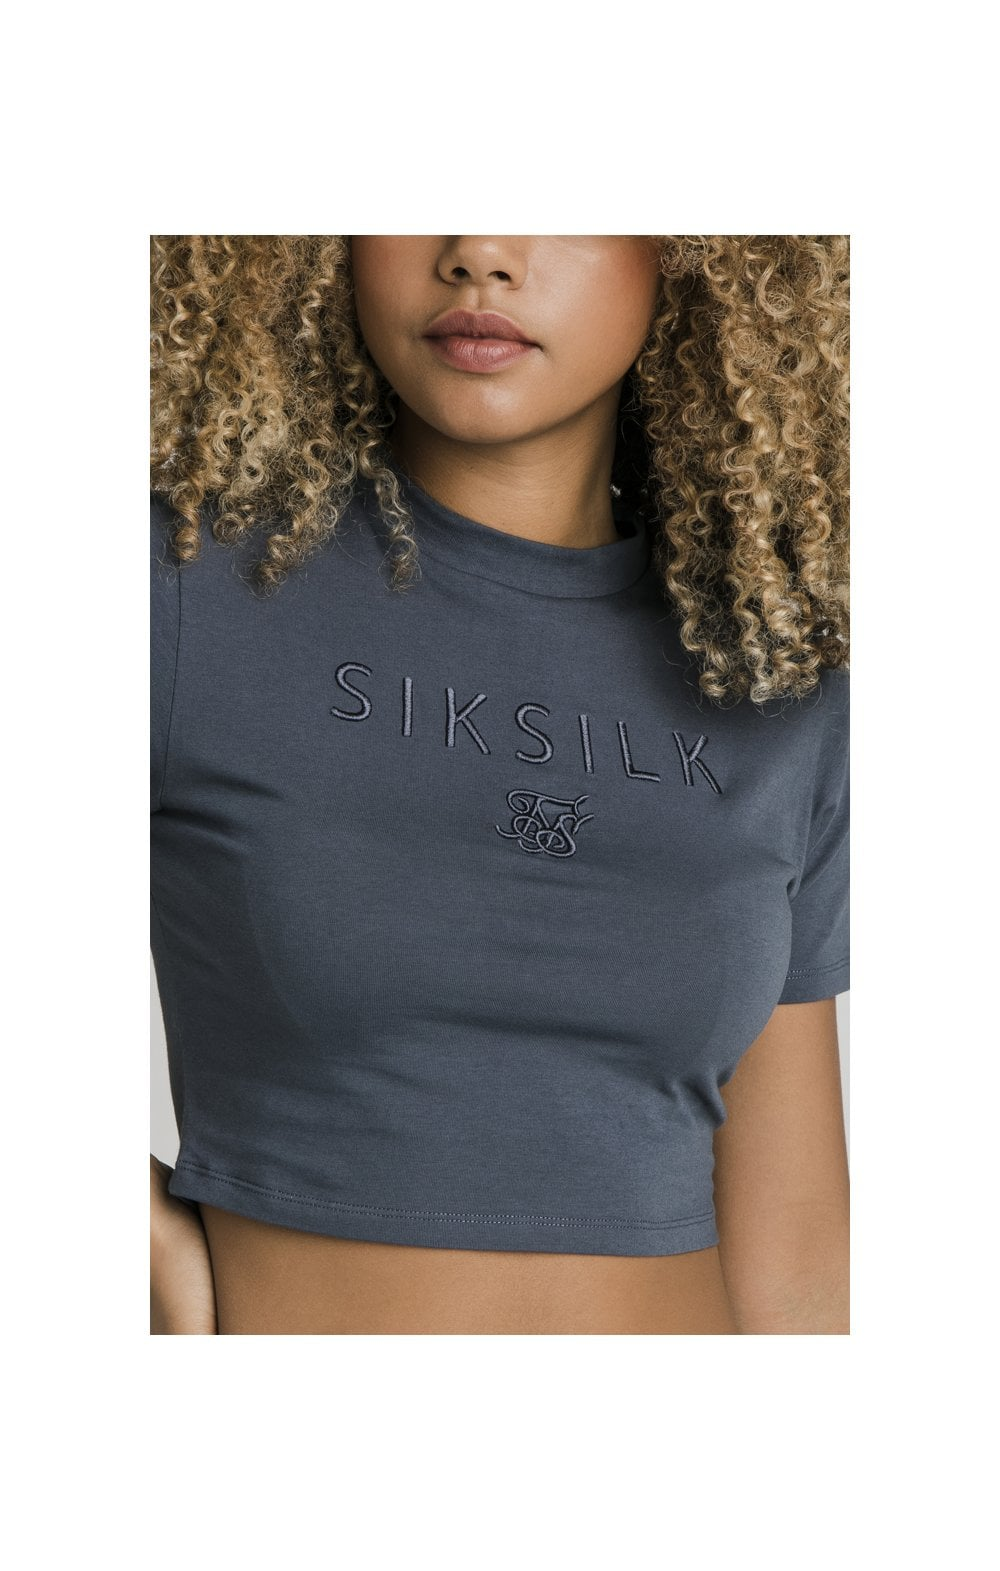 SikSilk Luxury Embroidered Crop Tee - Grey (1)